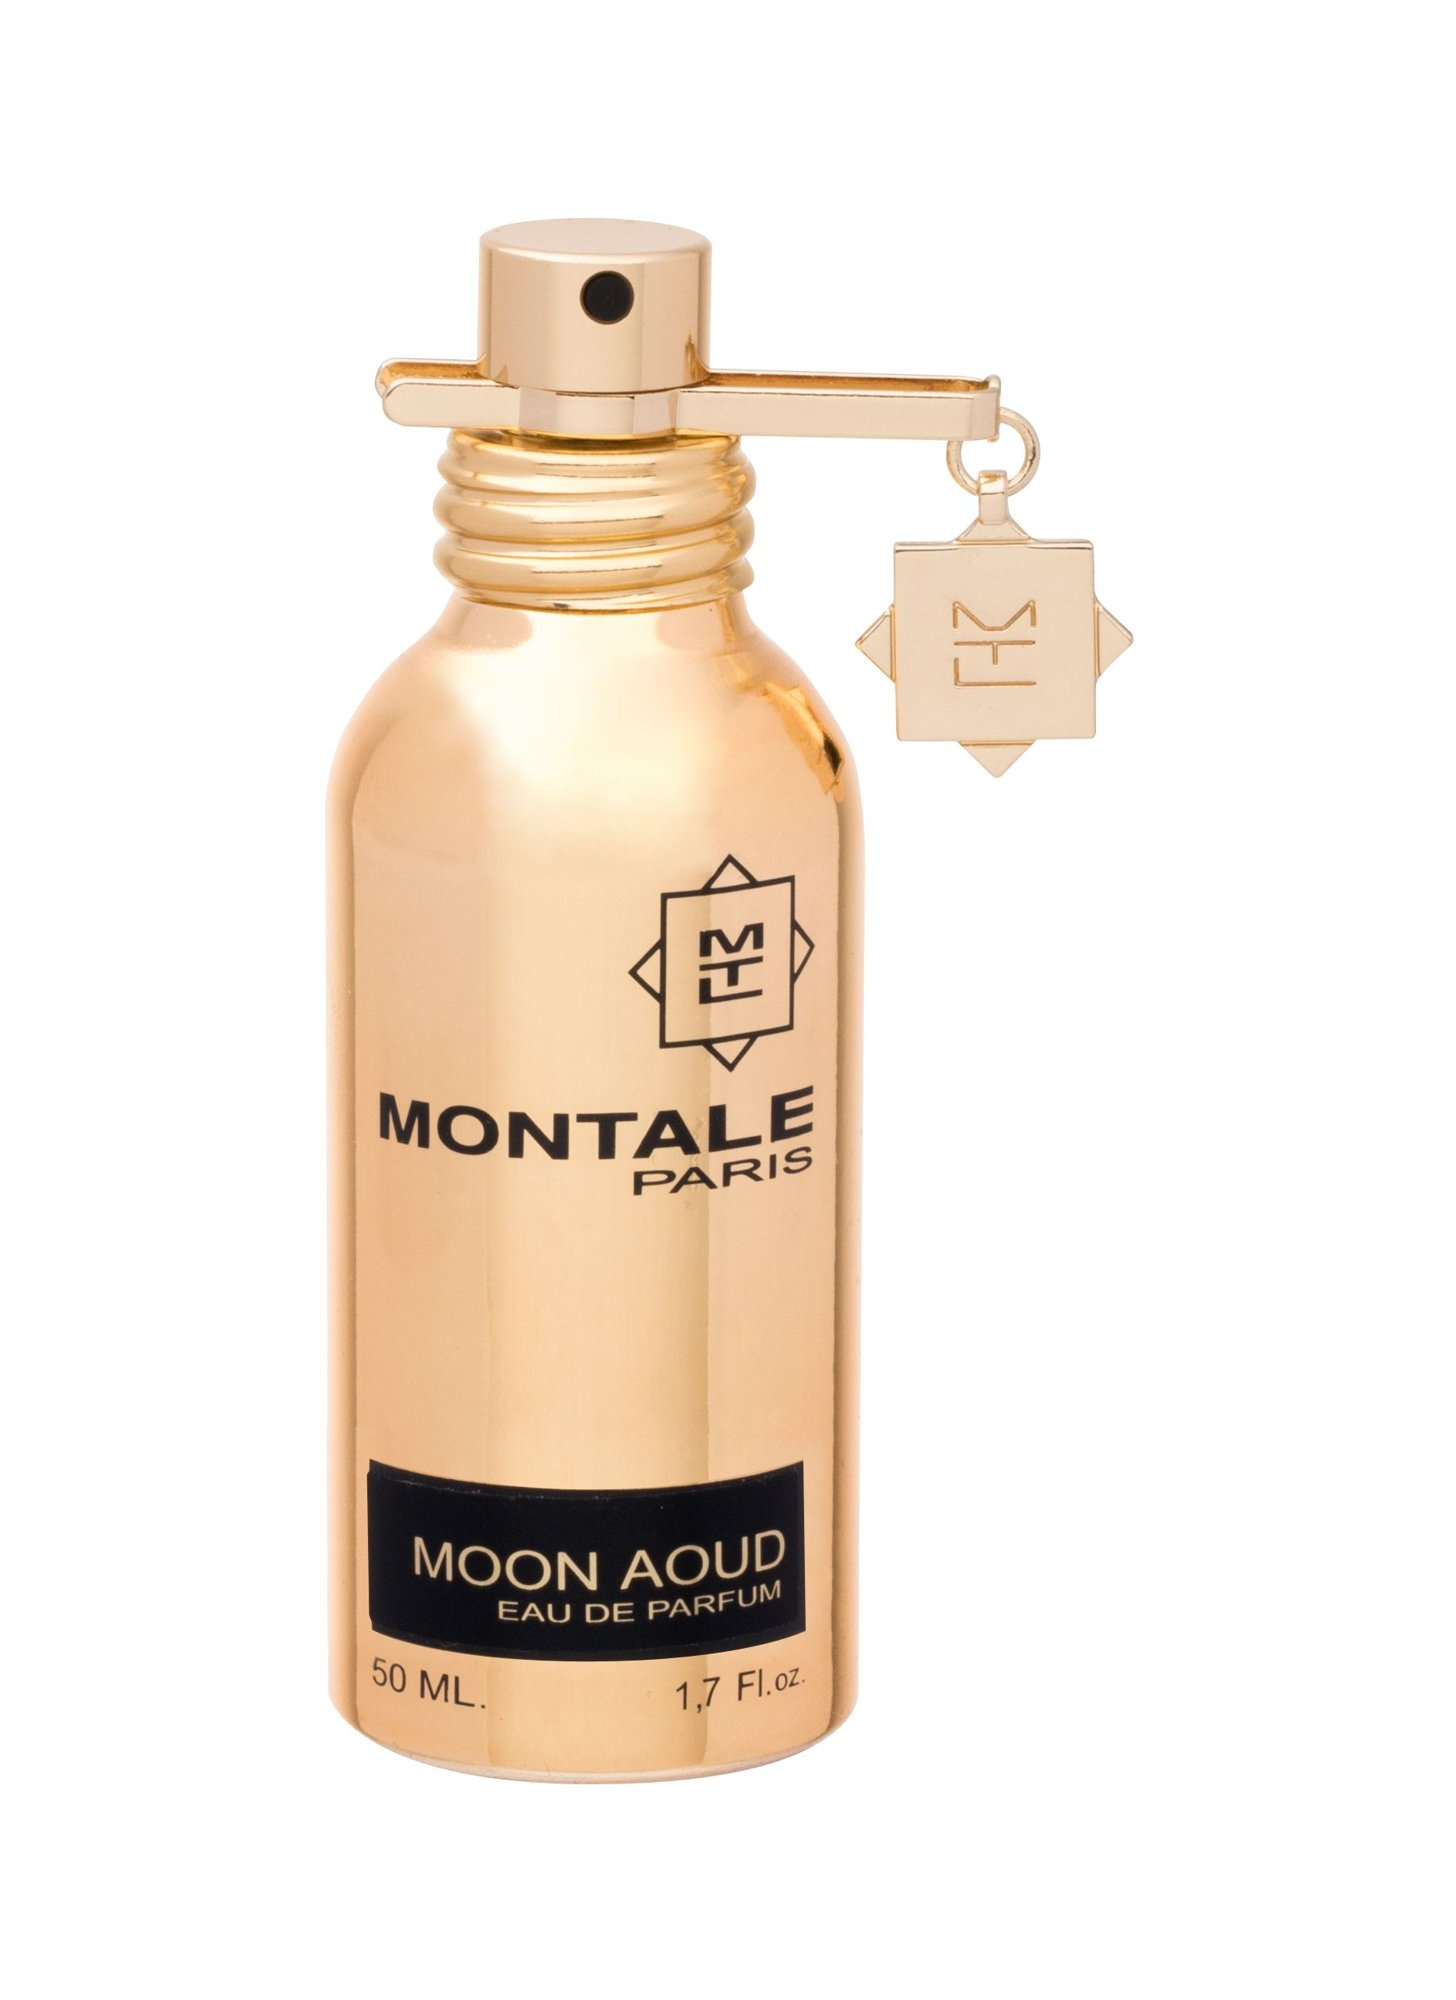 Montale Paris Moon Aoud EDP 50ml